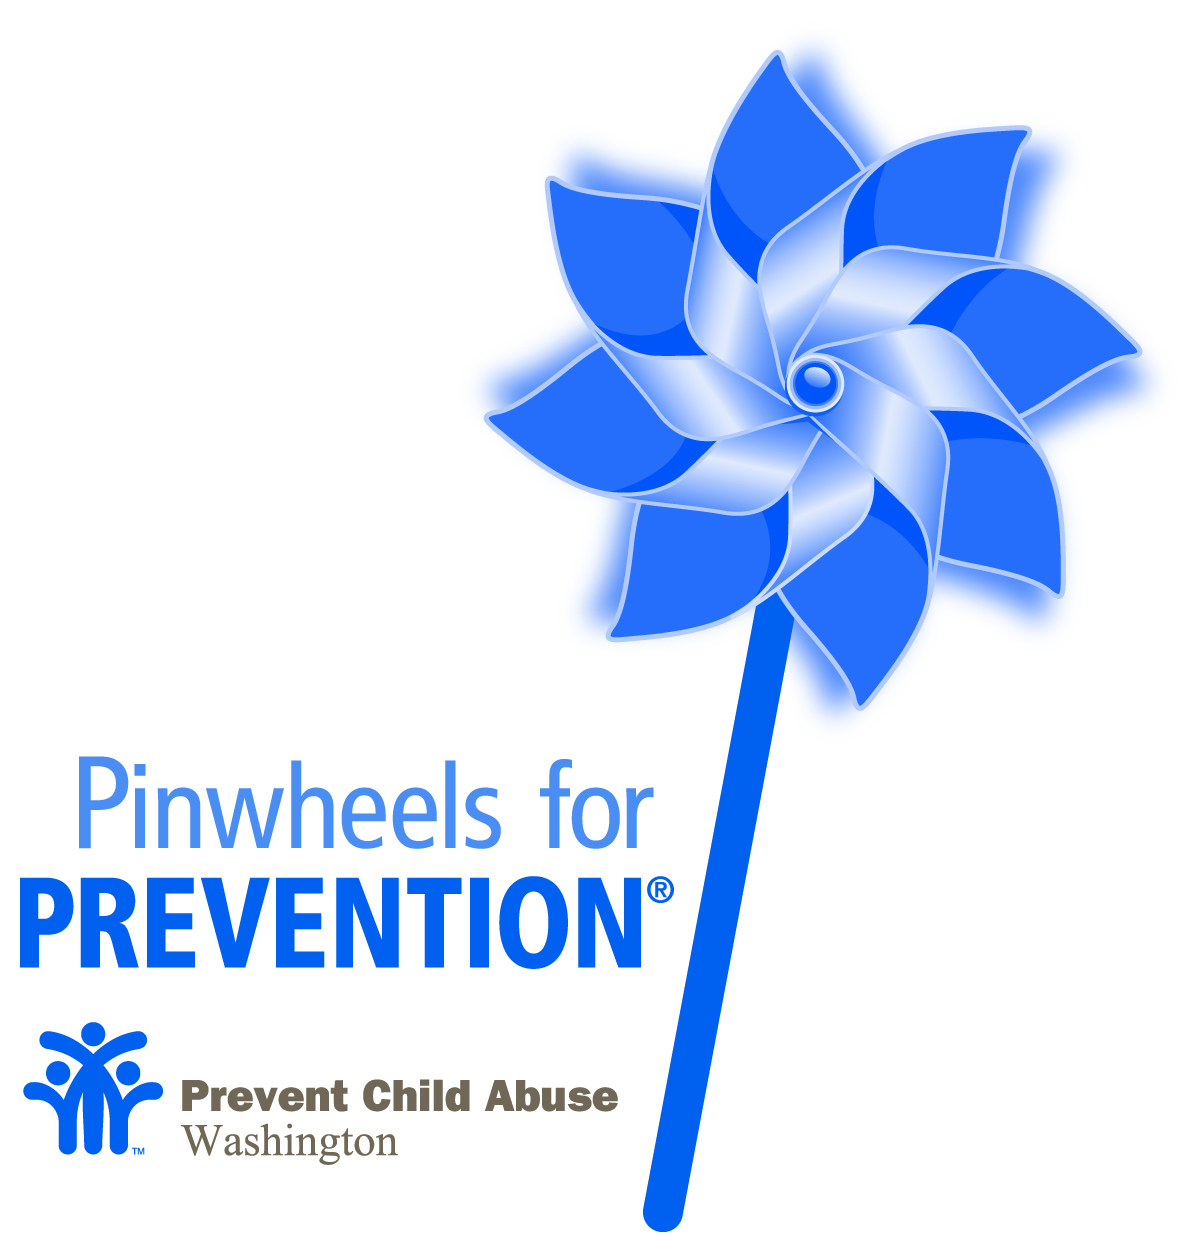 preventing child abuse Prevent child abuse arizona is shifting the public conversation about child maltreatment so that prevention is the priority pca arizona provides training, parenting education and prevention services to families, foster parents, child welfare professionals, social service providers, law enforcement, court personnel and the public.